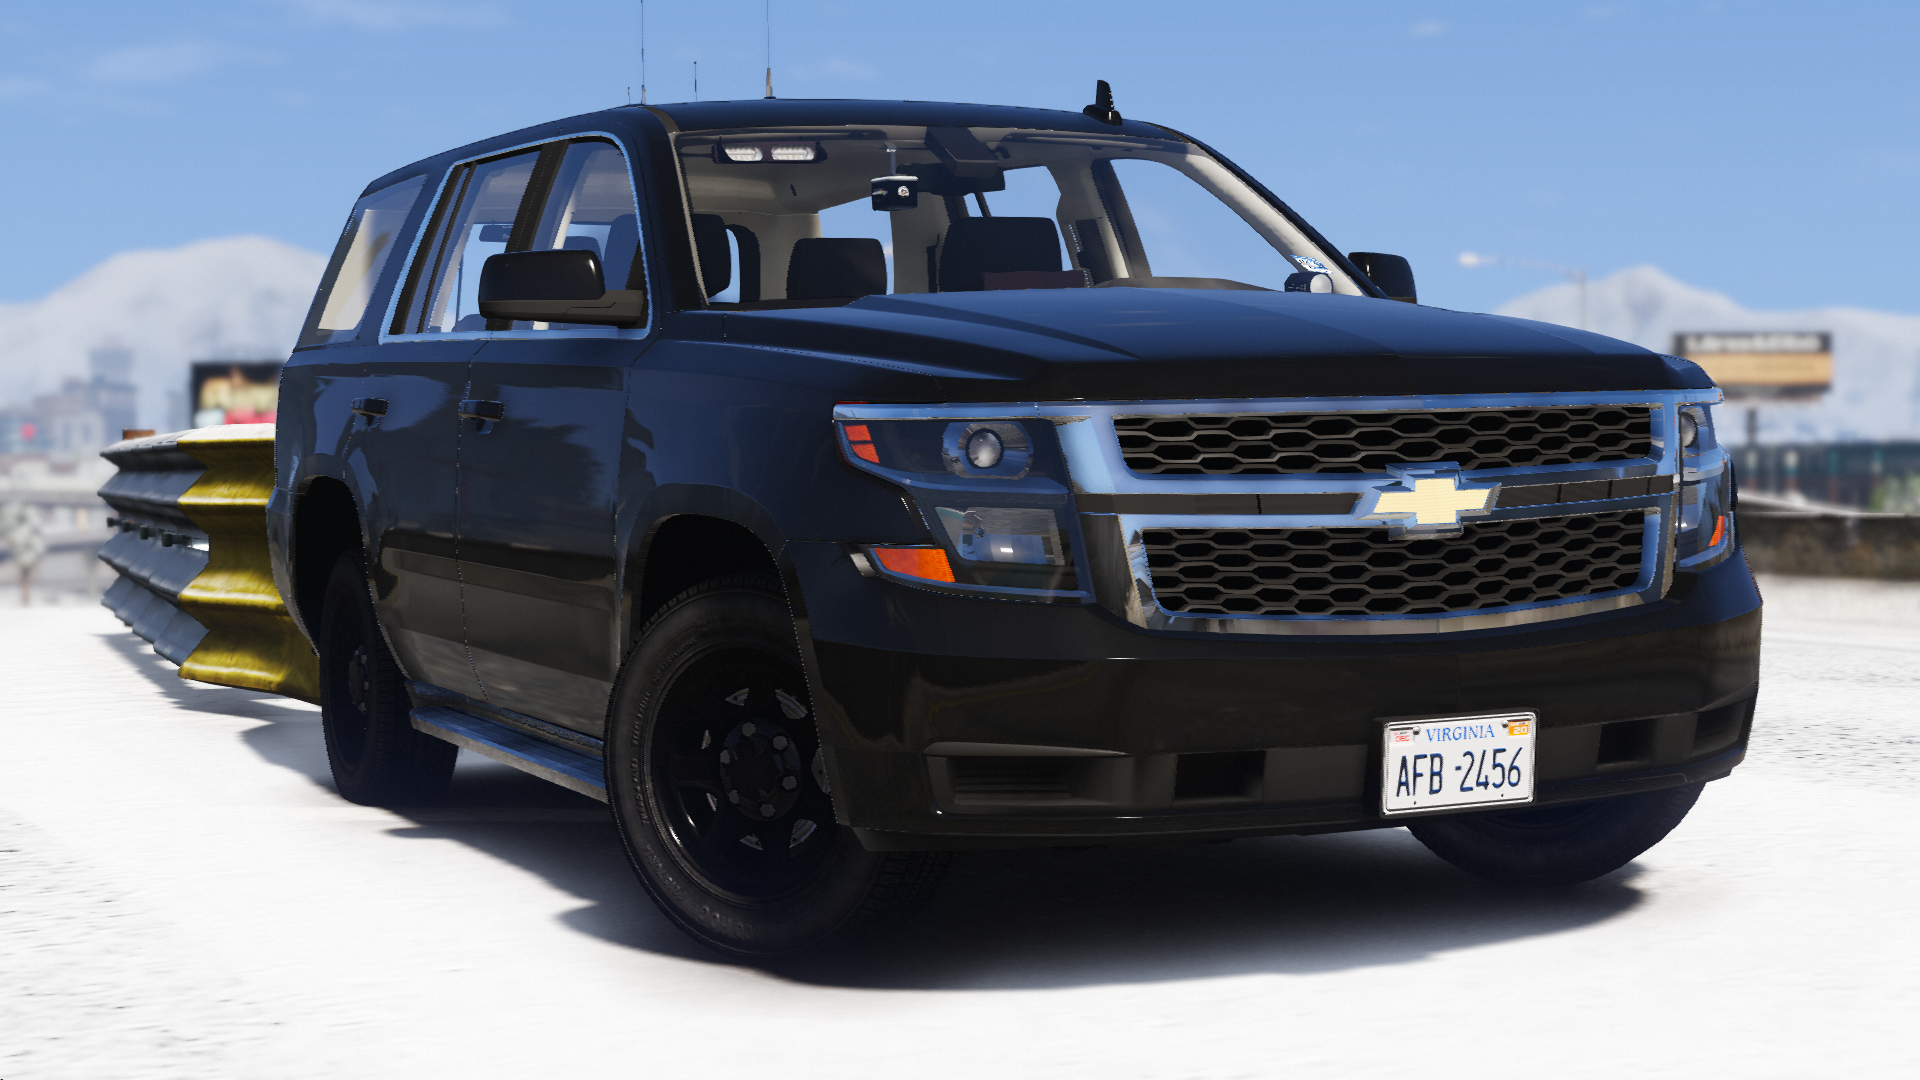 2020 Chevy Tahoe PPV- Virginia State Police